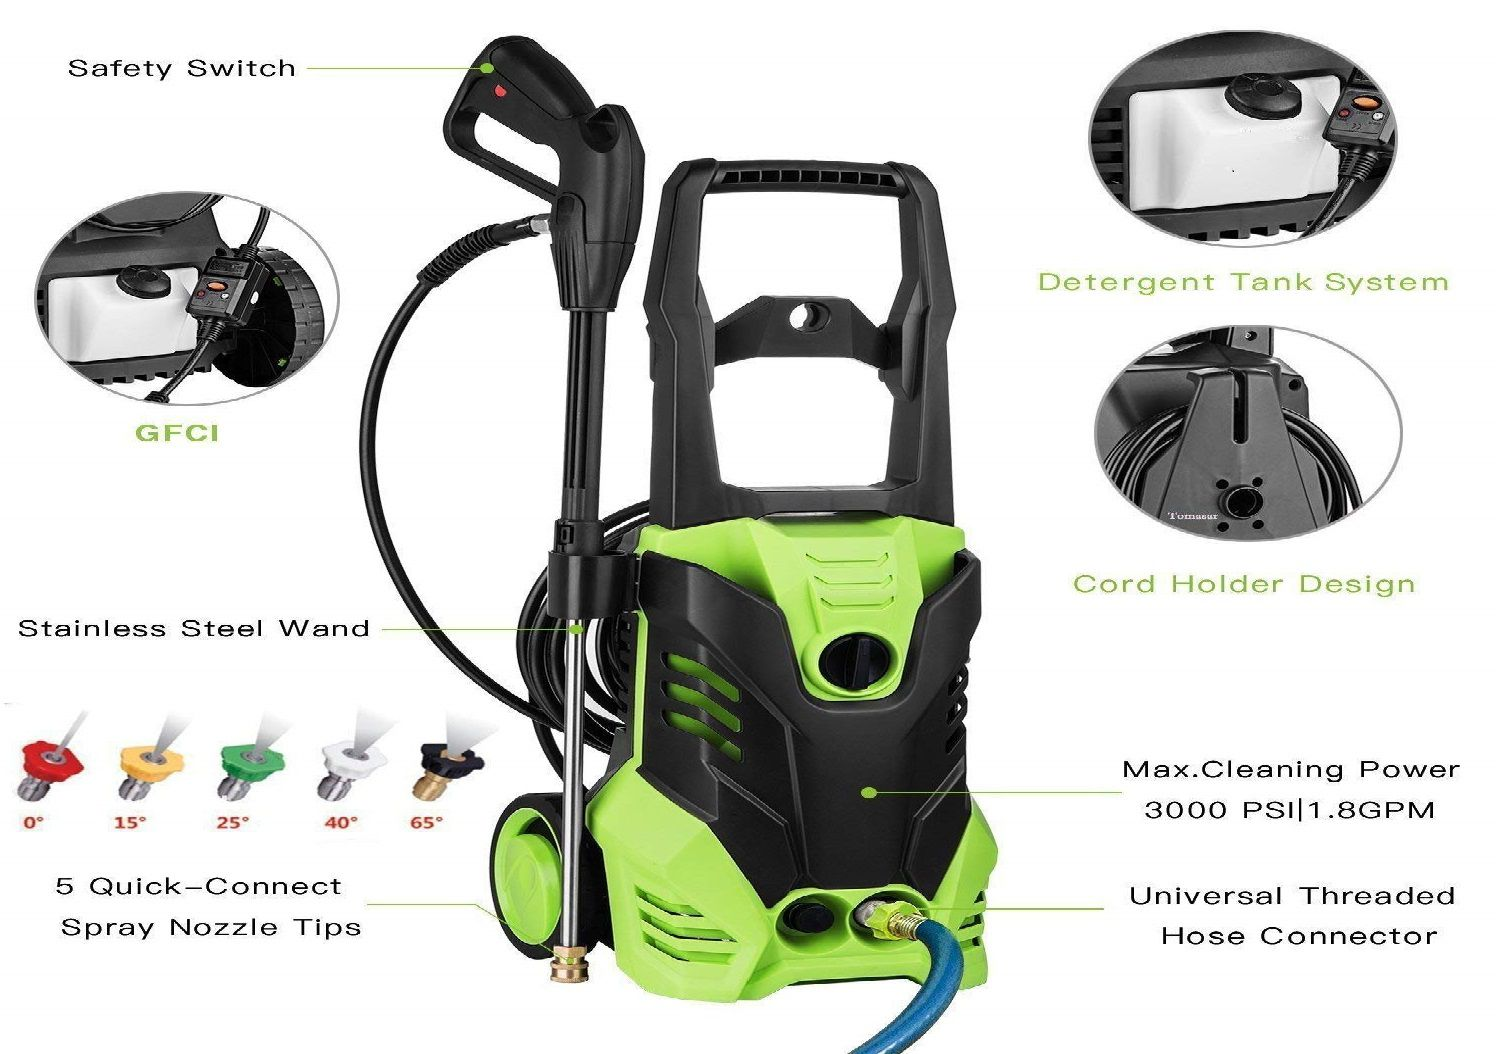 Ncient SVX4500 High Pressure Washer